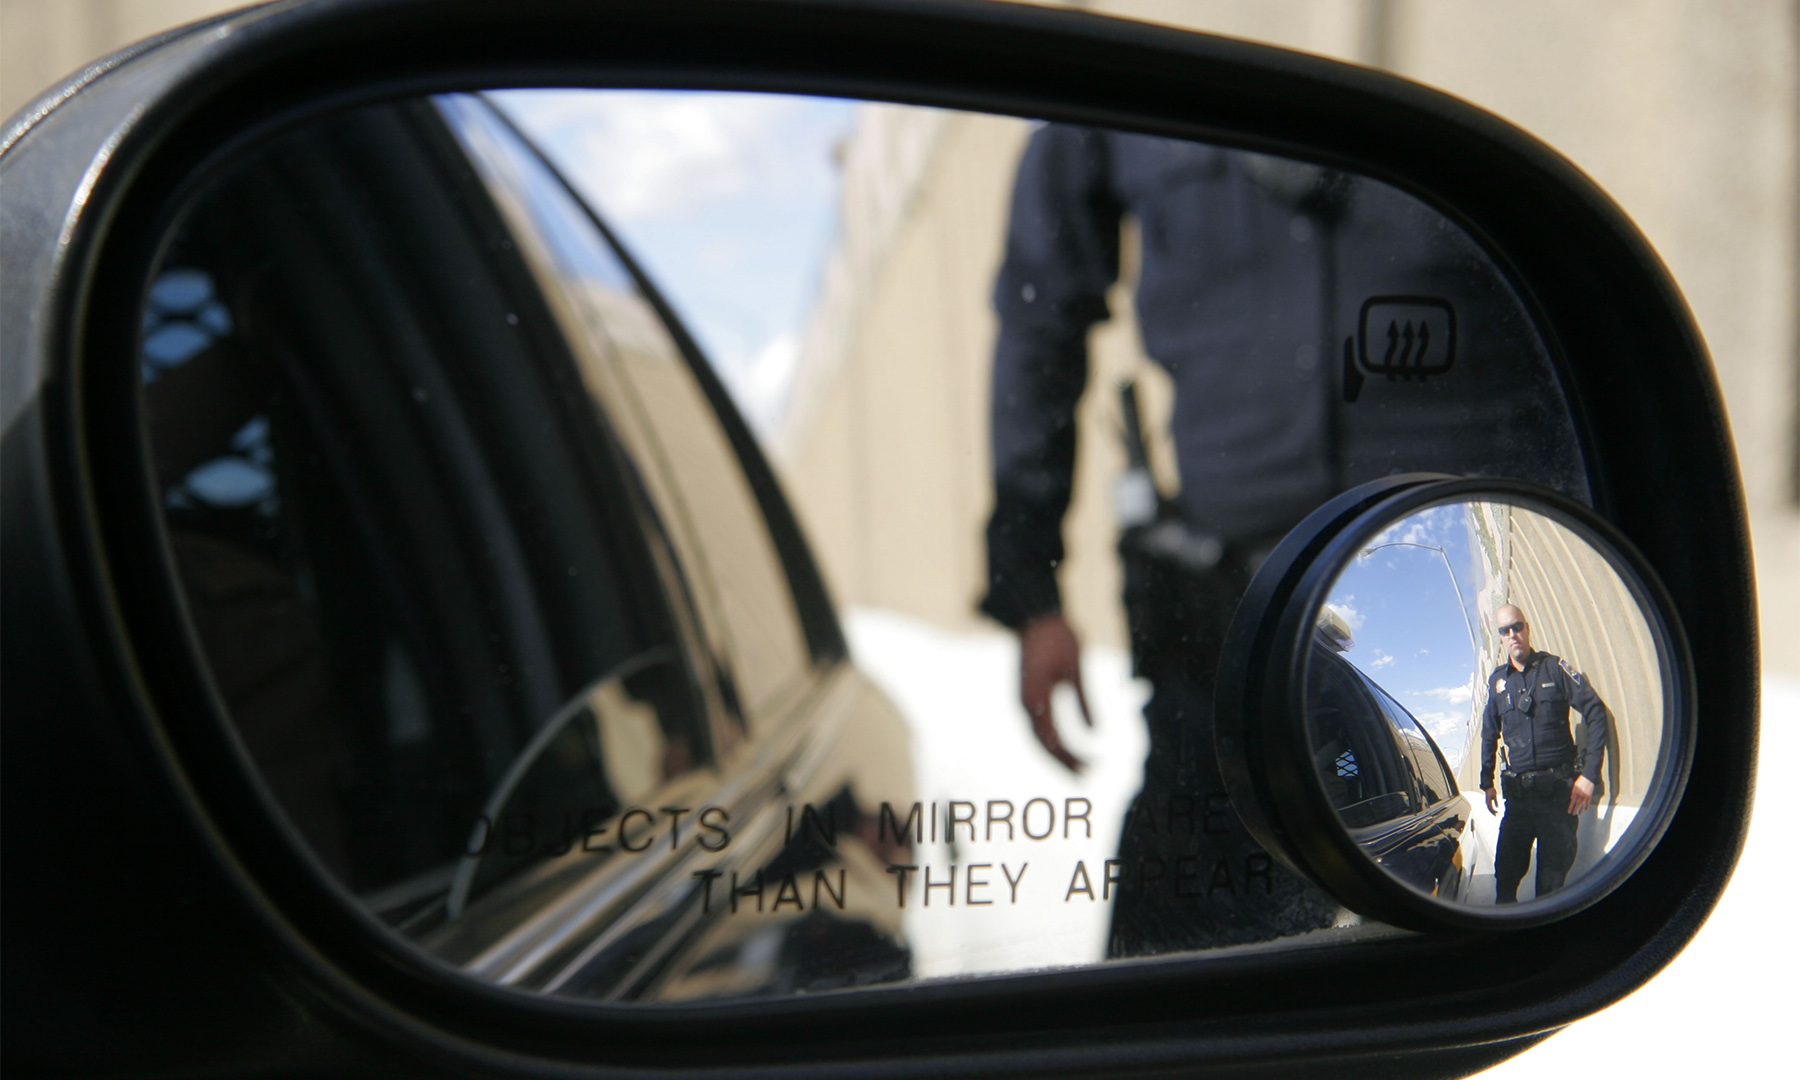 Police officer seen approaching in a car's side mirror.